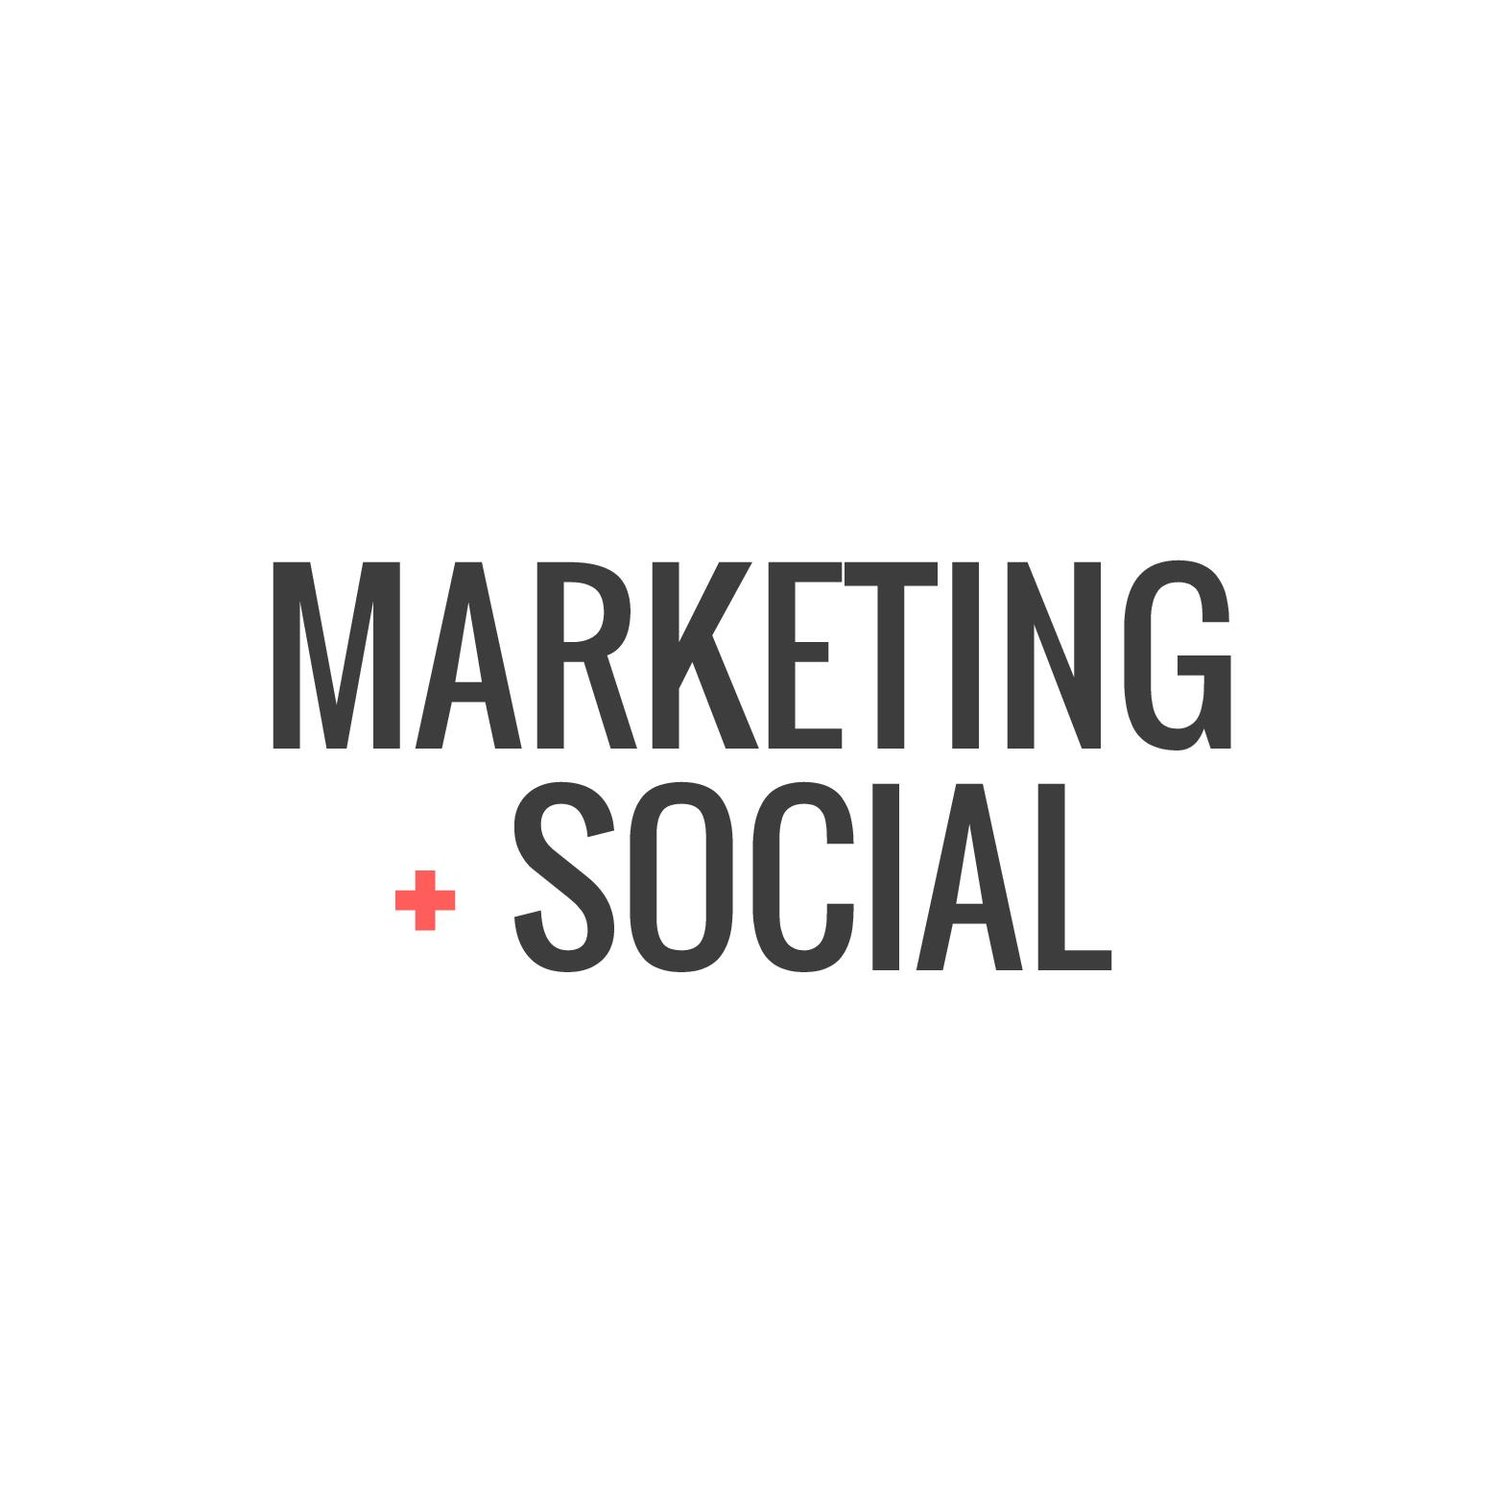 Marketing + Social